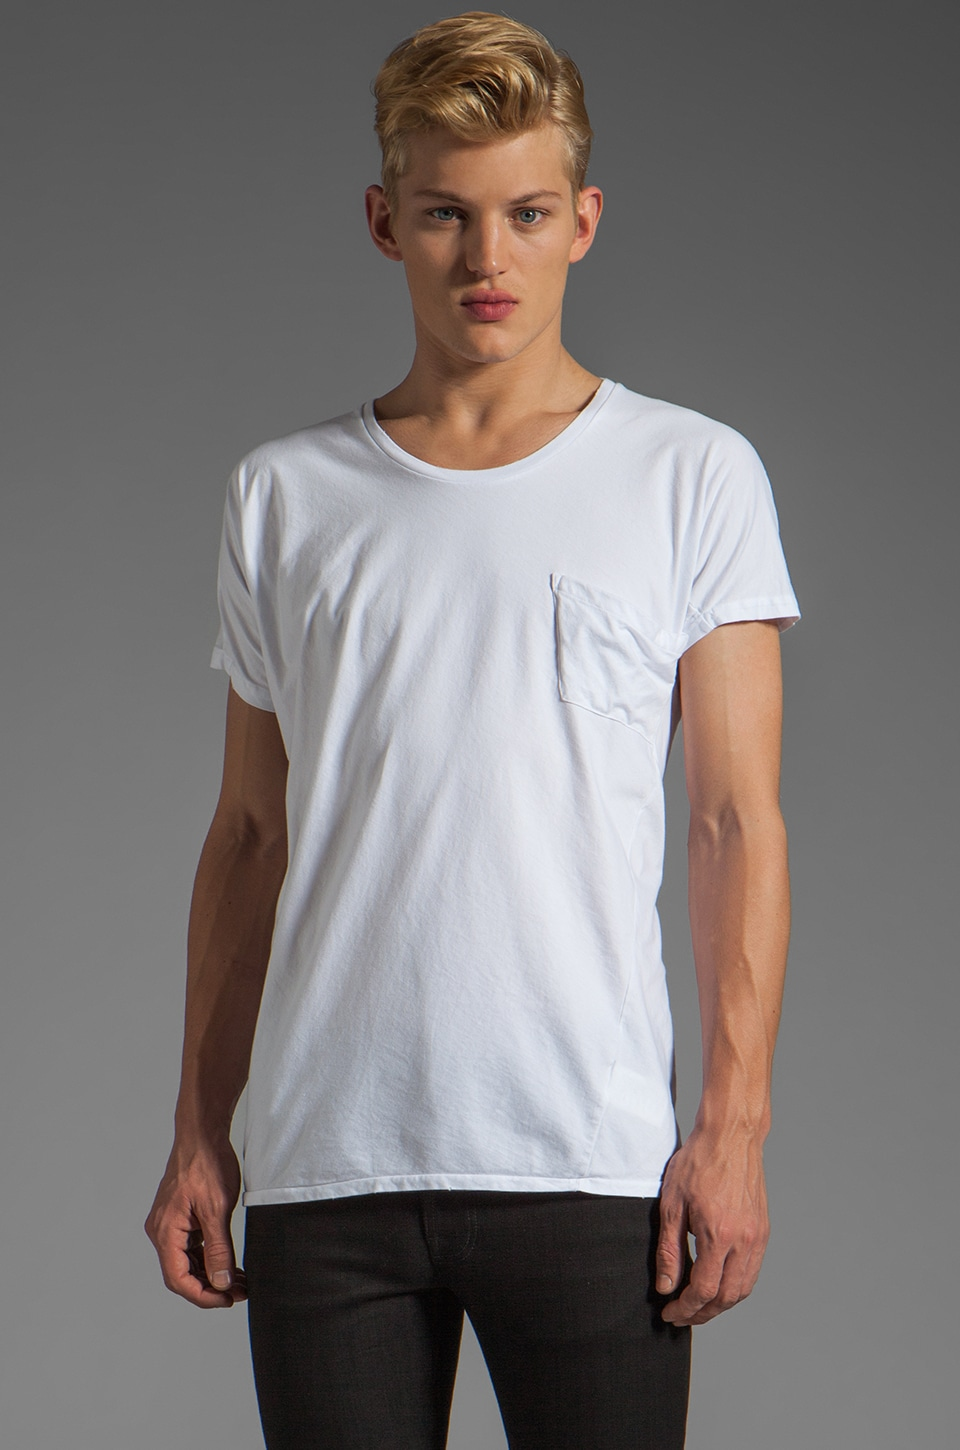 Scotch & Soda Tee in White